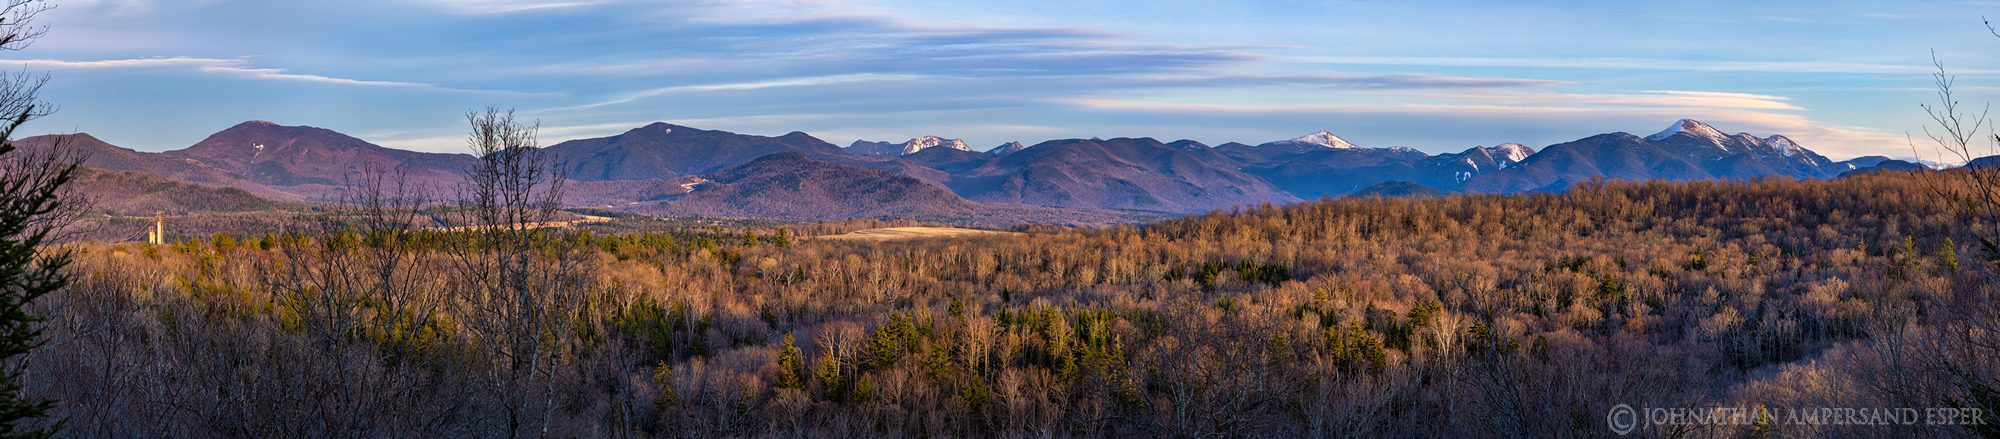 Henry's Woods trails viewpoint, Lake Placid village. 42377 x 9300 pixel = 394 megapixel equivalent panorama, of the High Peaks...